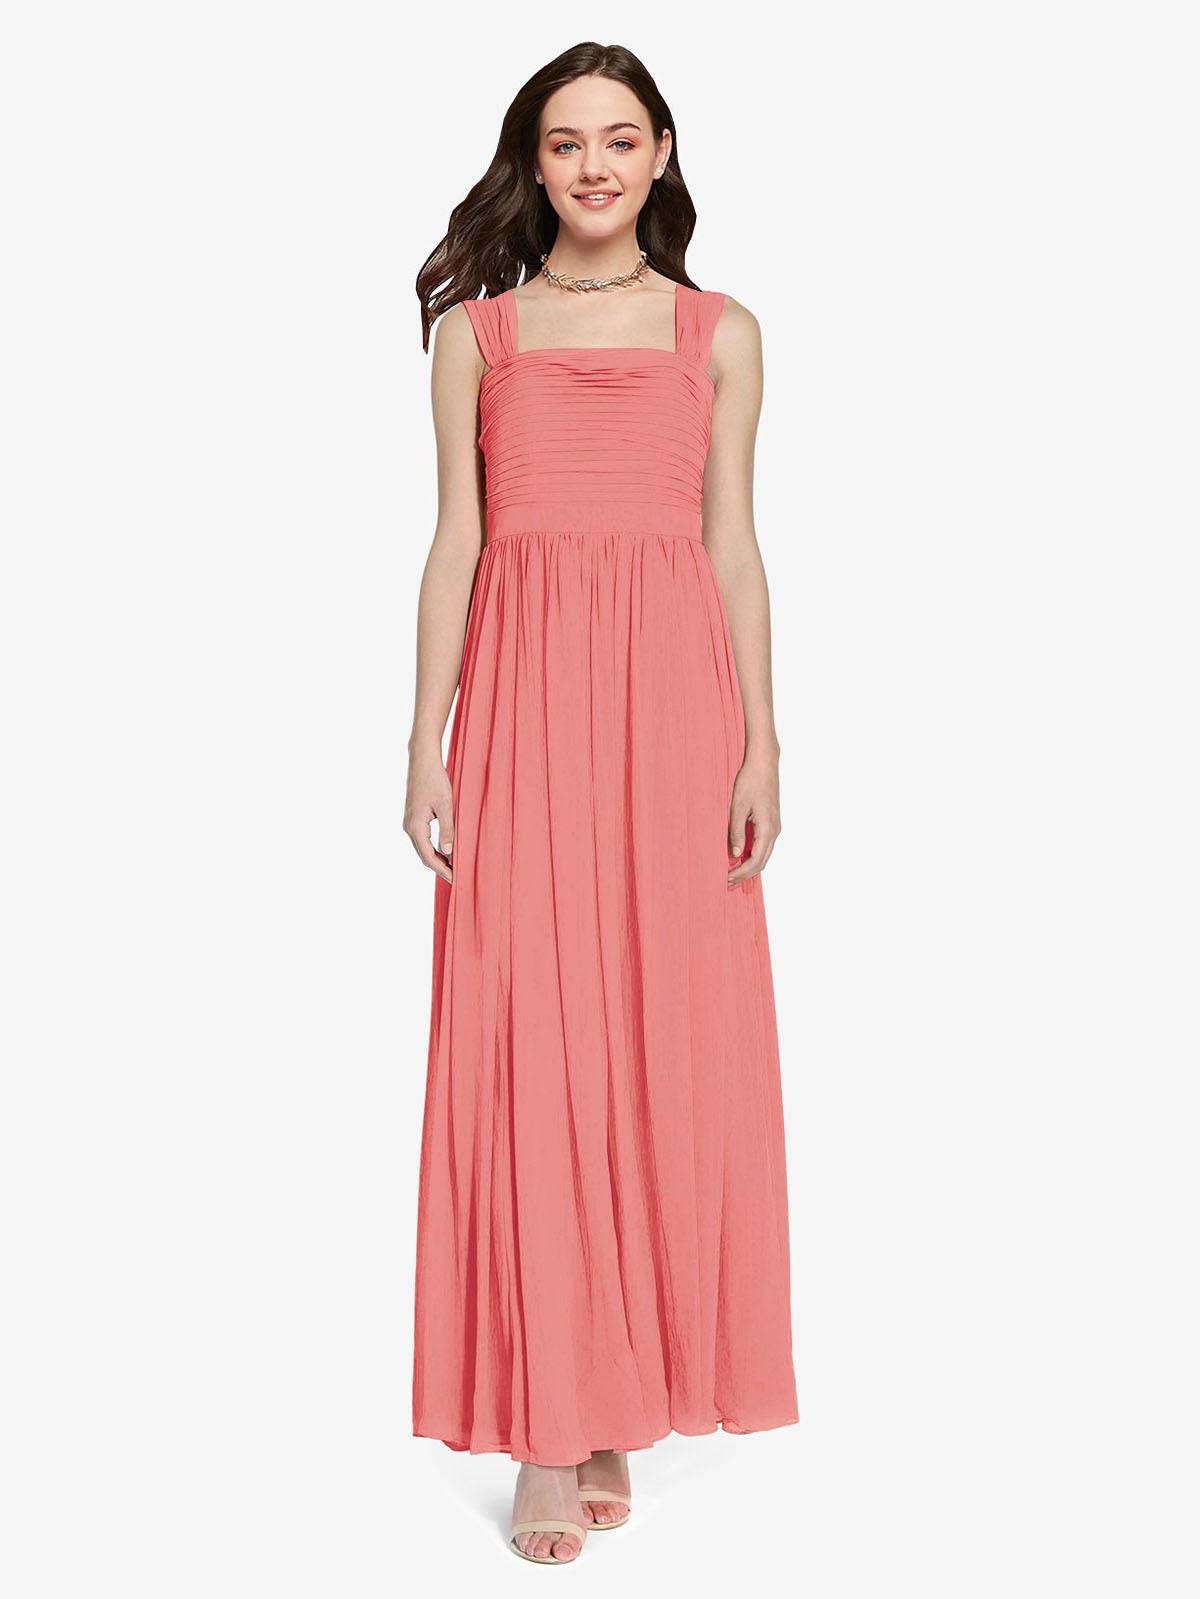 Long A-Line Square Sleeveless Desert Rose Chiffon Bridesmaid Dress Aldridge